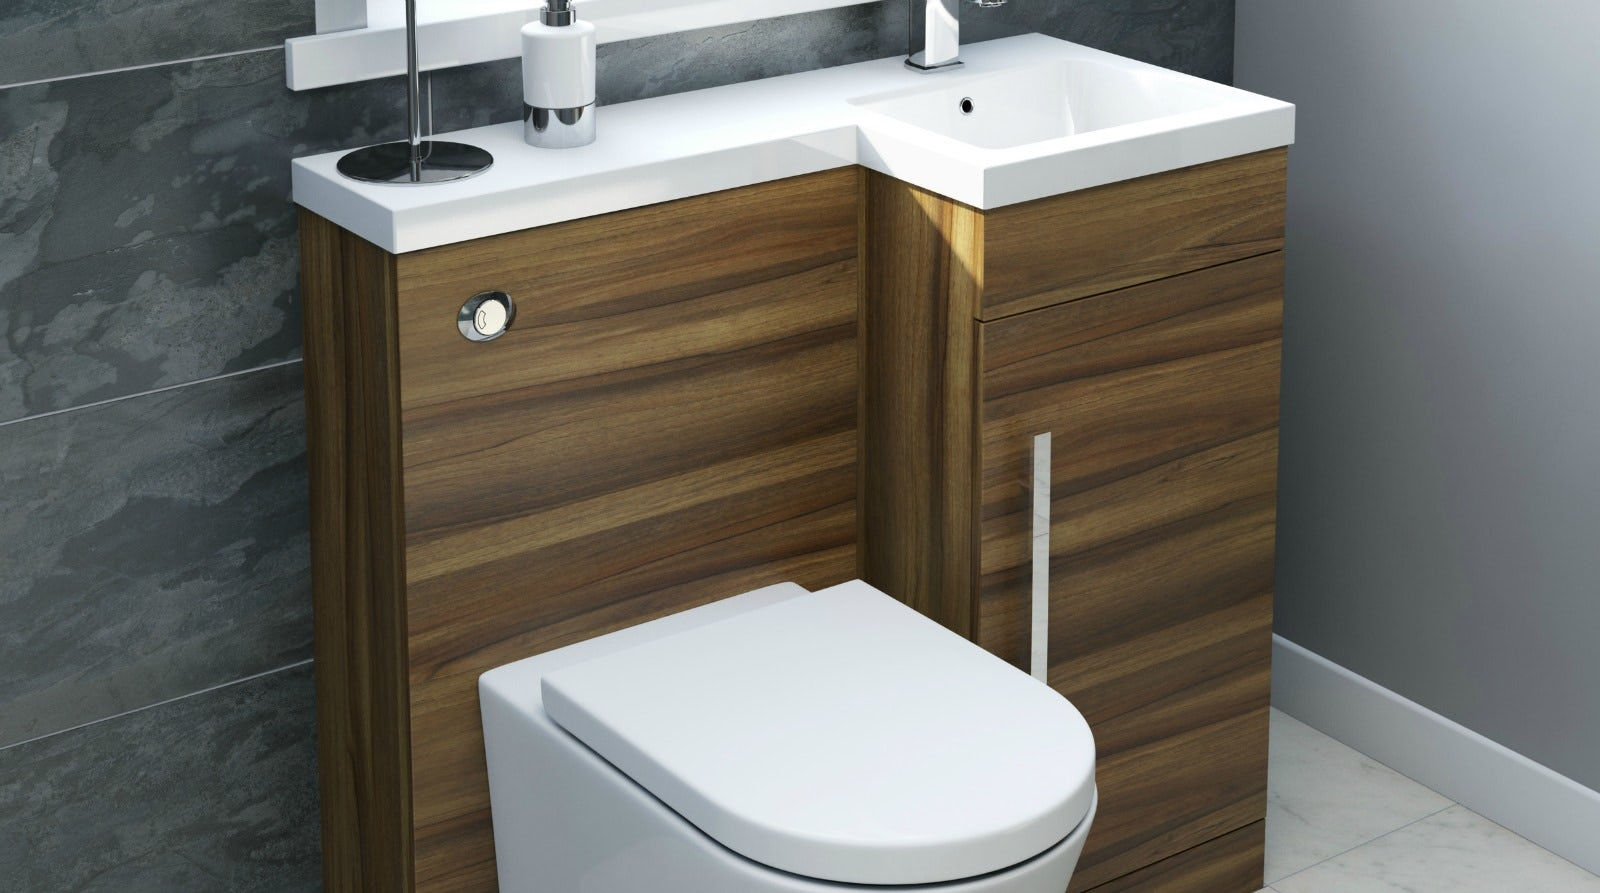 Toilet Sink Unit : Toilet and Basin Unit Buying Guide VictoriaPlum.com